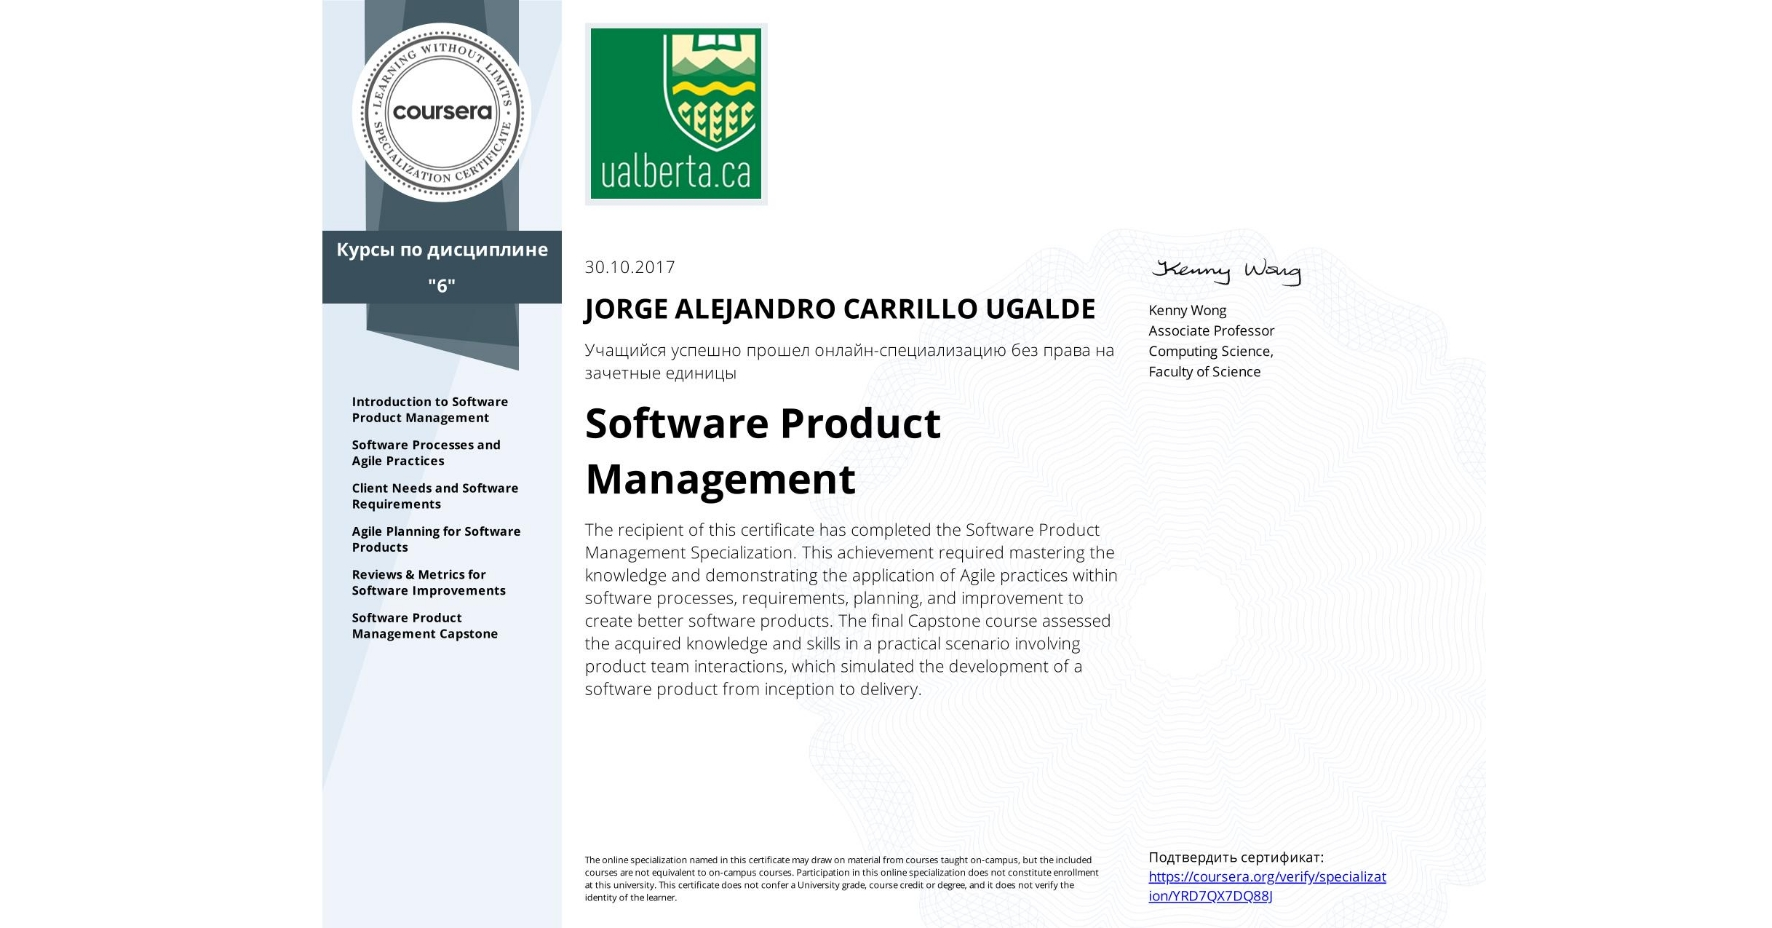 View certificate for Jorge Carrillo, Software Product Management, offered through Coursera. The recipient of this certificate has completed the Software Product Management Specialization. This achievement required mastering the knowledge and demonstrating the application of Agile practices within software processes, requirements, planning, and improvement to create better software products. The final Capstone course assessed the acquired knowledge and skills in a practical scenario involving product team interactions, which simulated the development of a software product from inception to delivery.